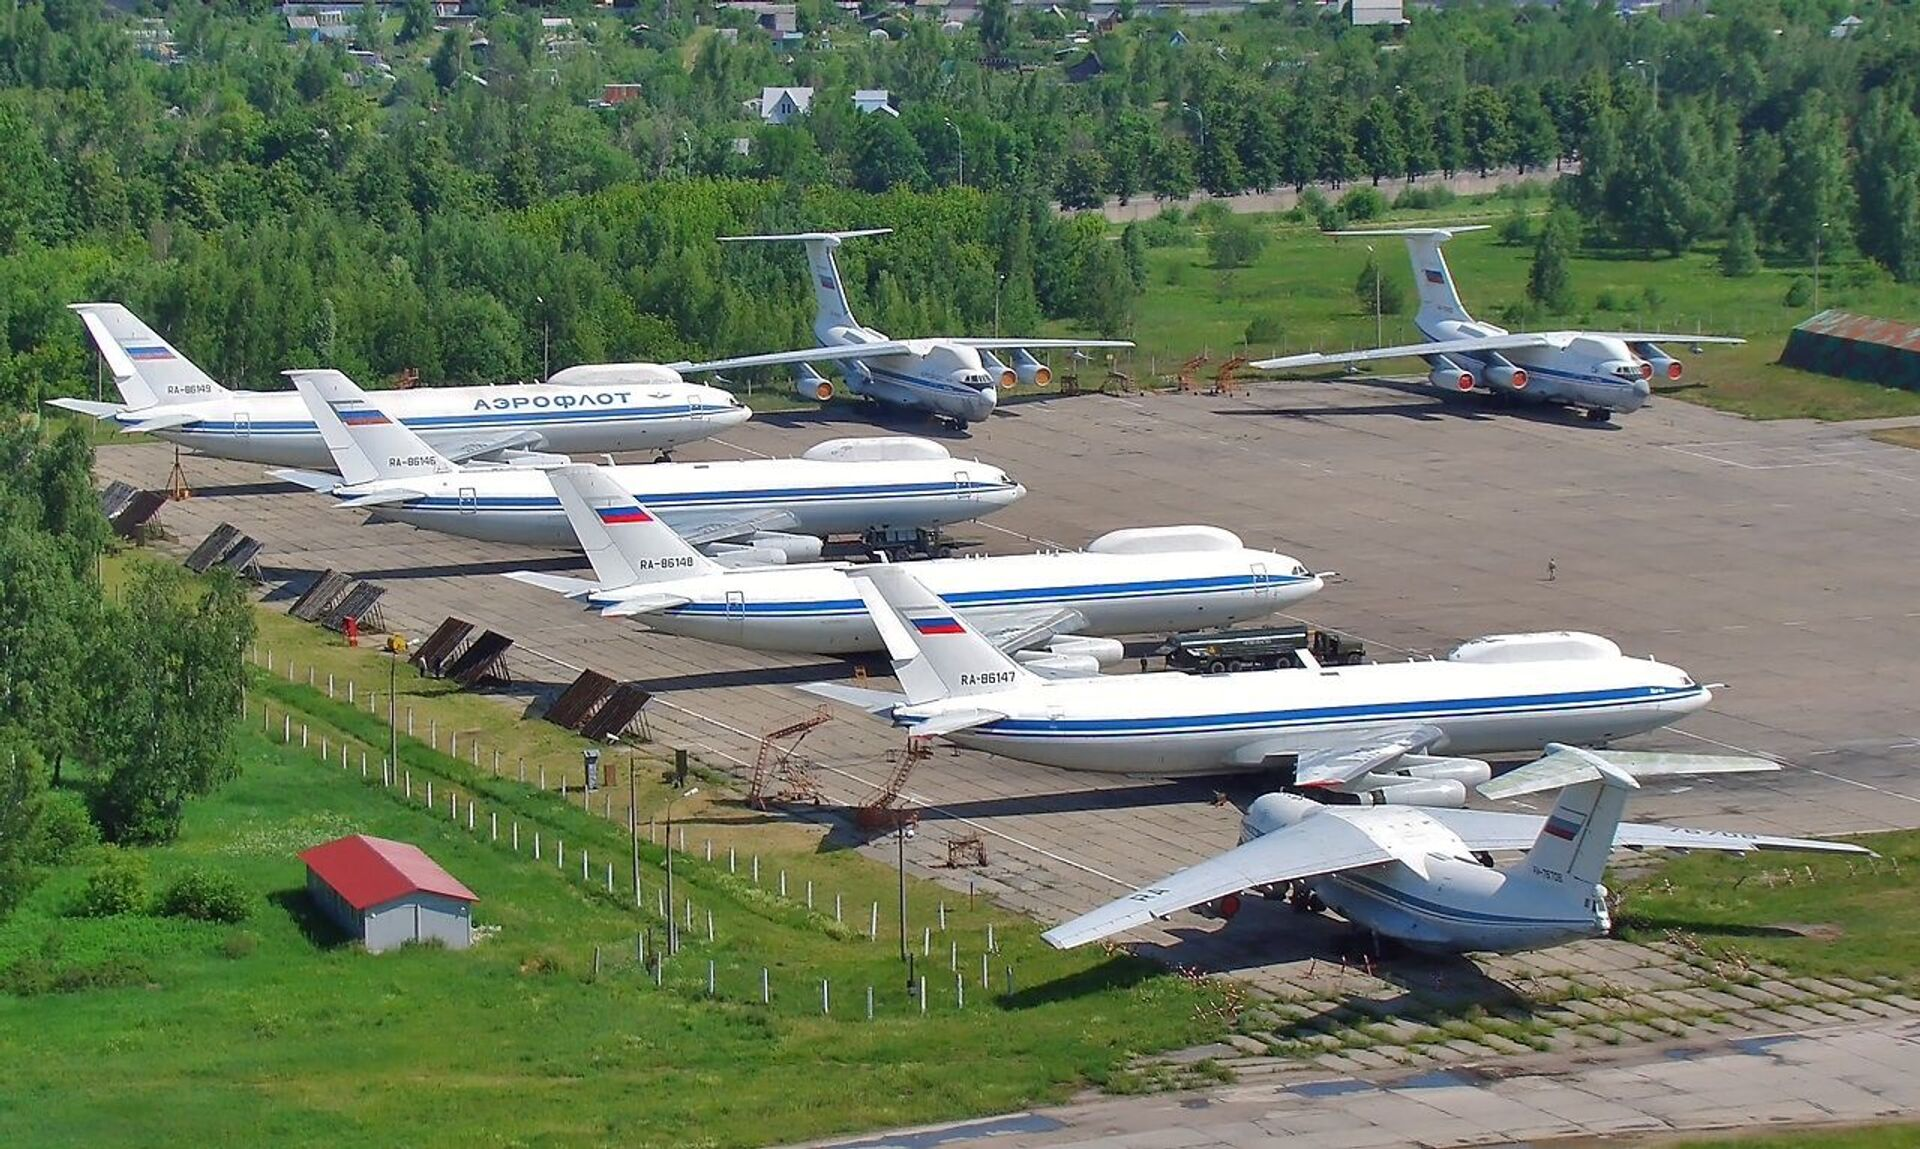 Four Il-80s and a pair of Il-76SKs at Chaklovsky airfield, 2011. - Sputnik International, 1920, 07.09.2021